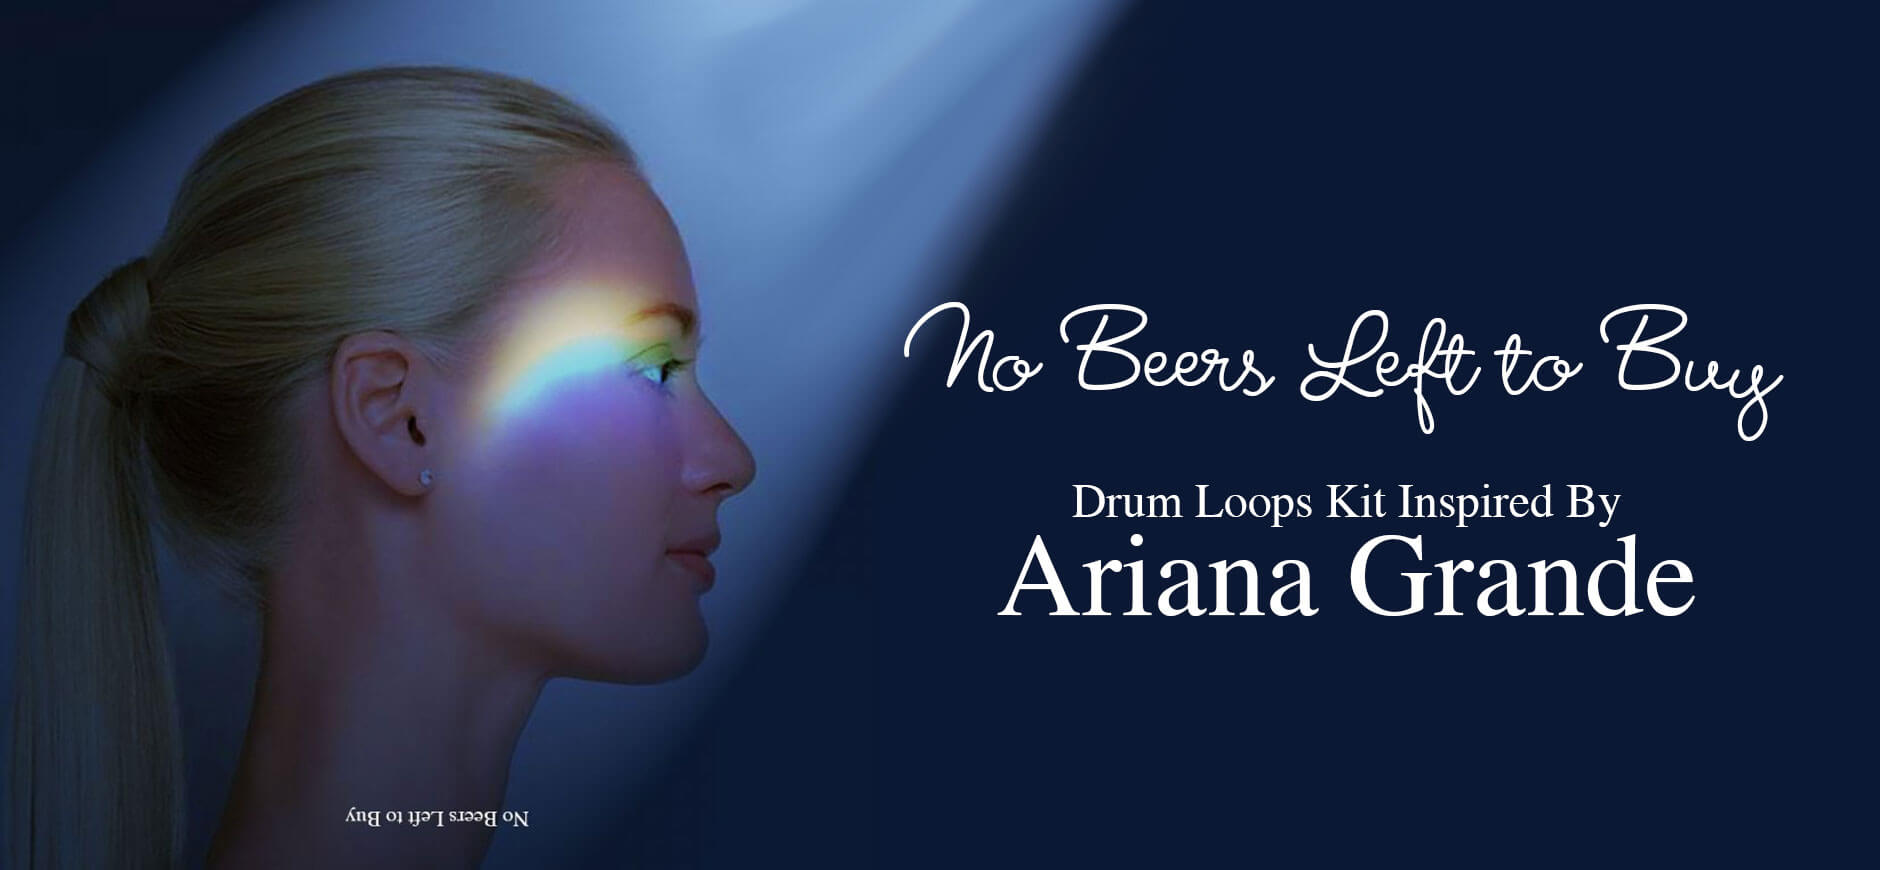 No Tears Left to Cry Drum Loops Kit Inspired by Ariana Grande